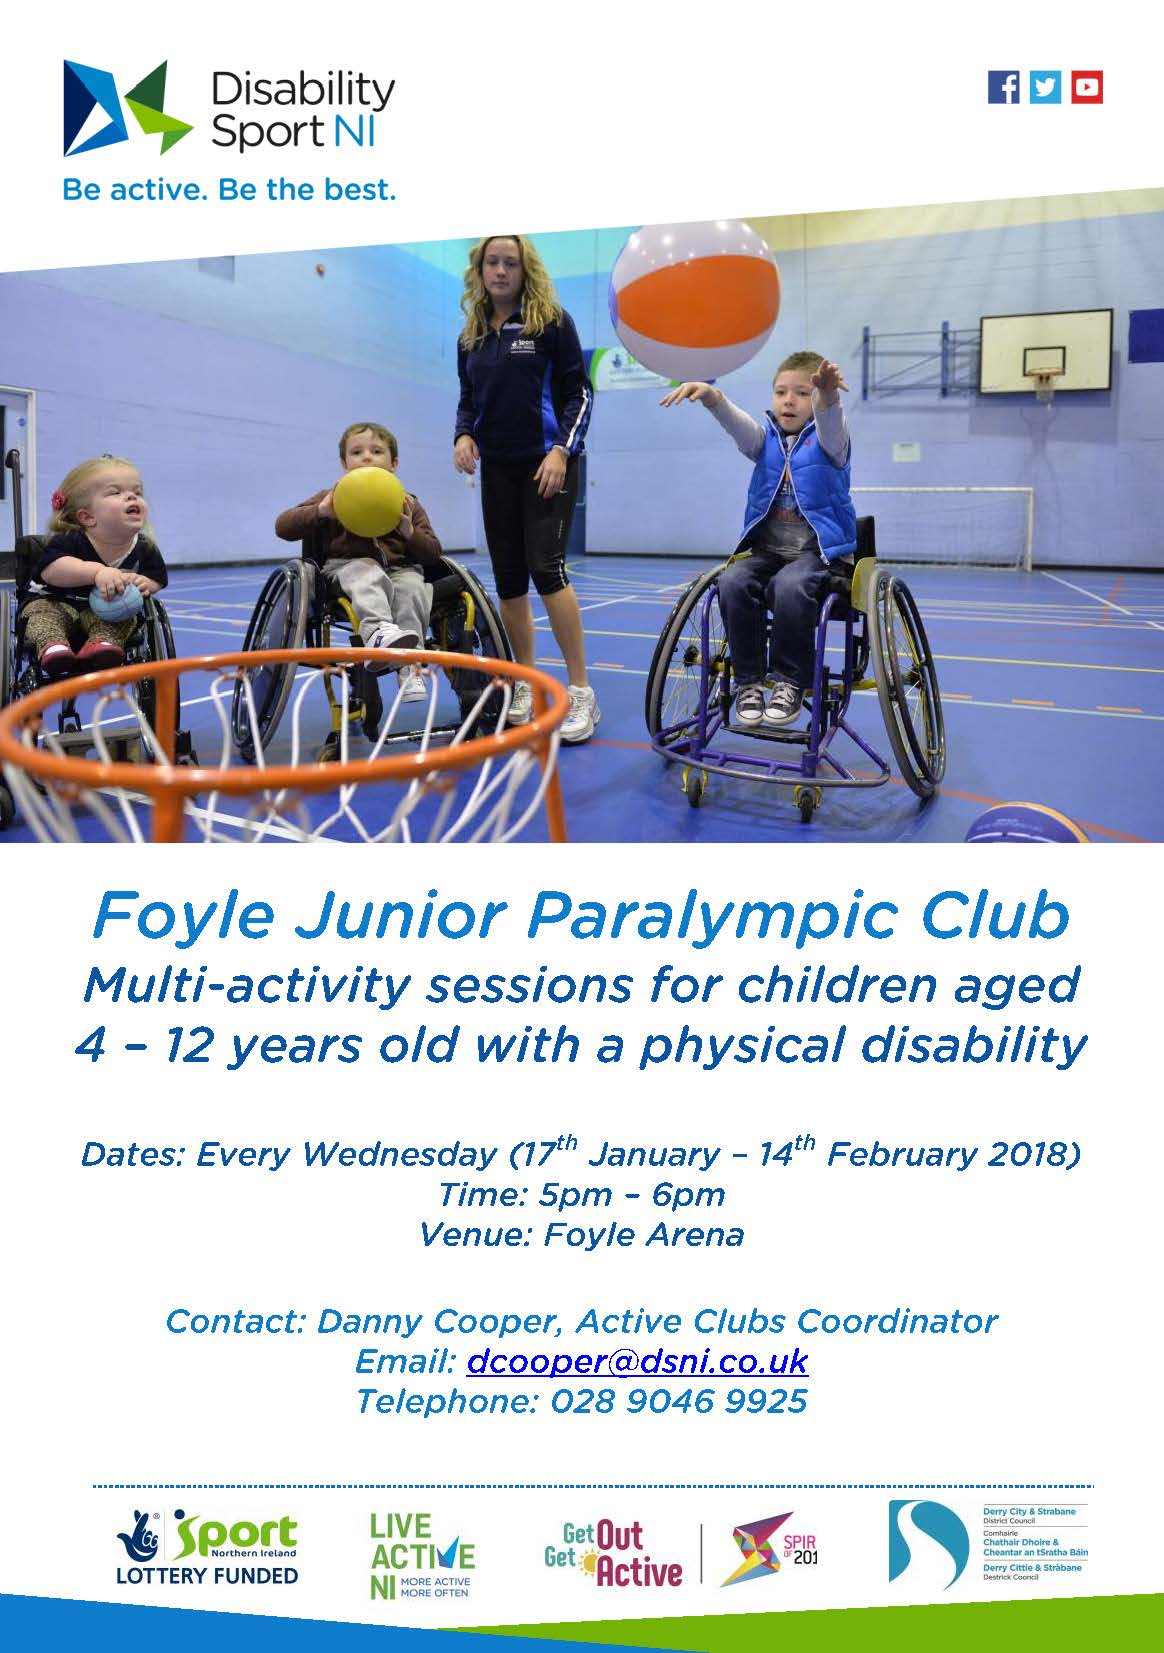 Foyle Junior Paralympic Club, alternative formats available upon request